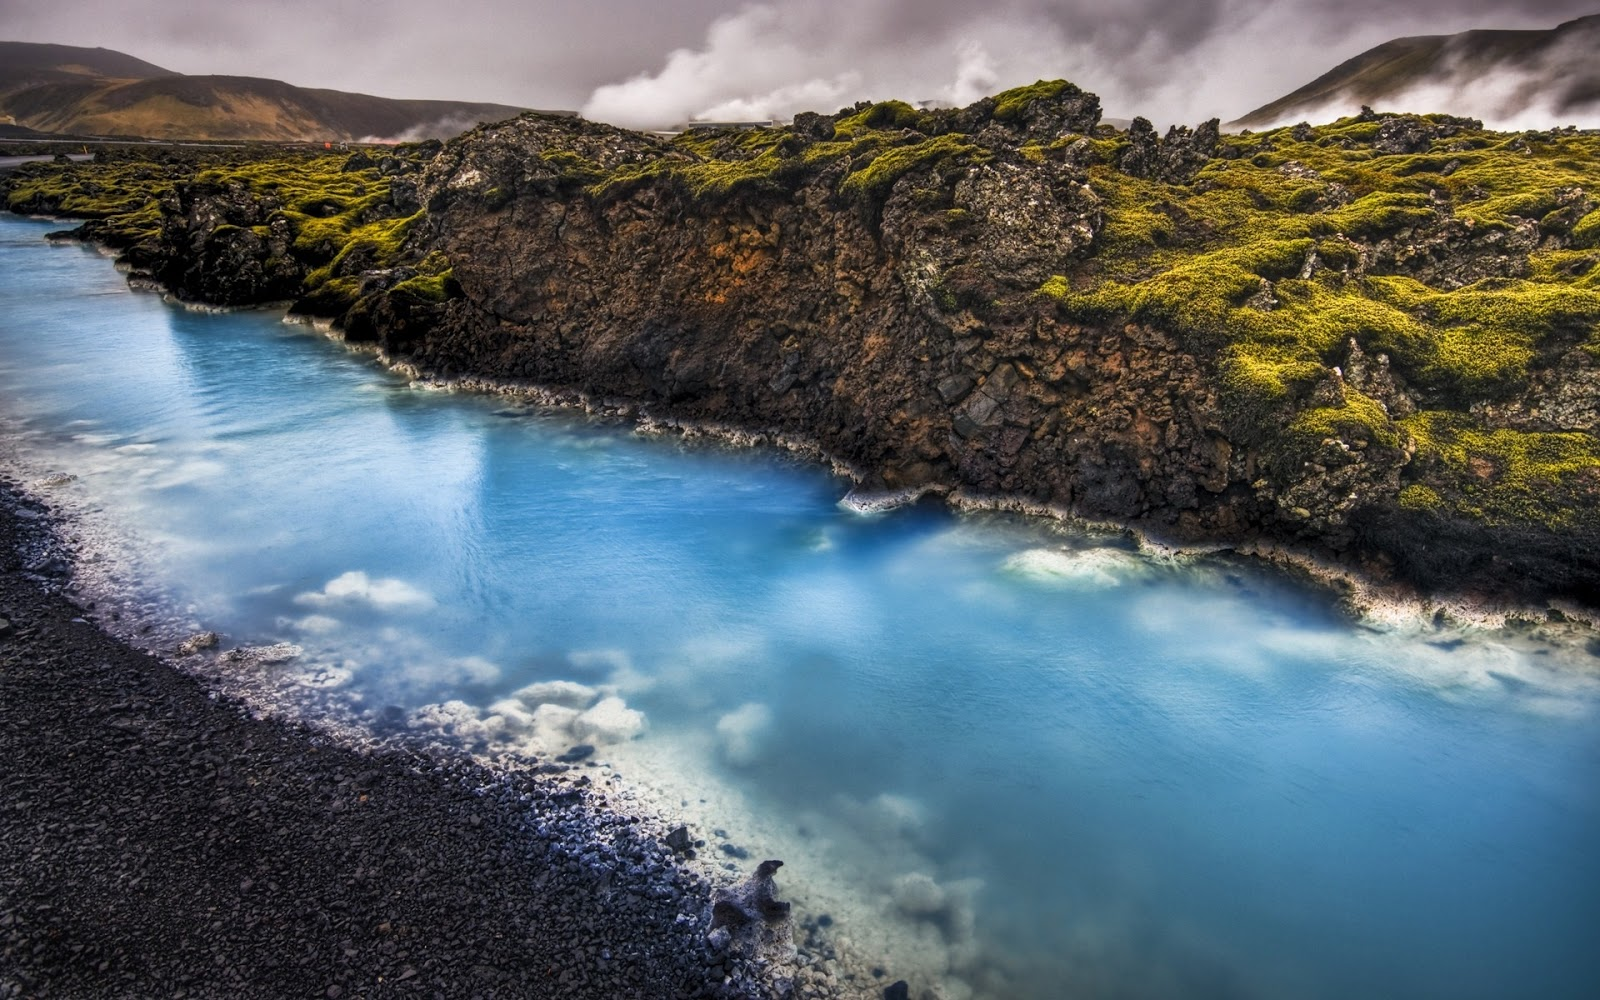 Travel Trip Journey: Blue Lagoon Iceland